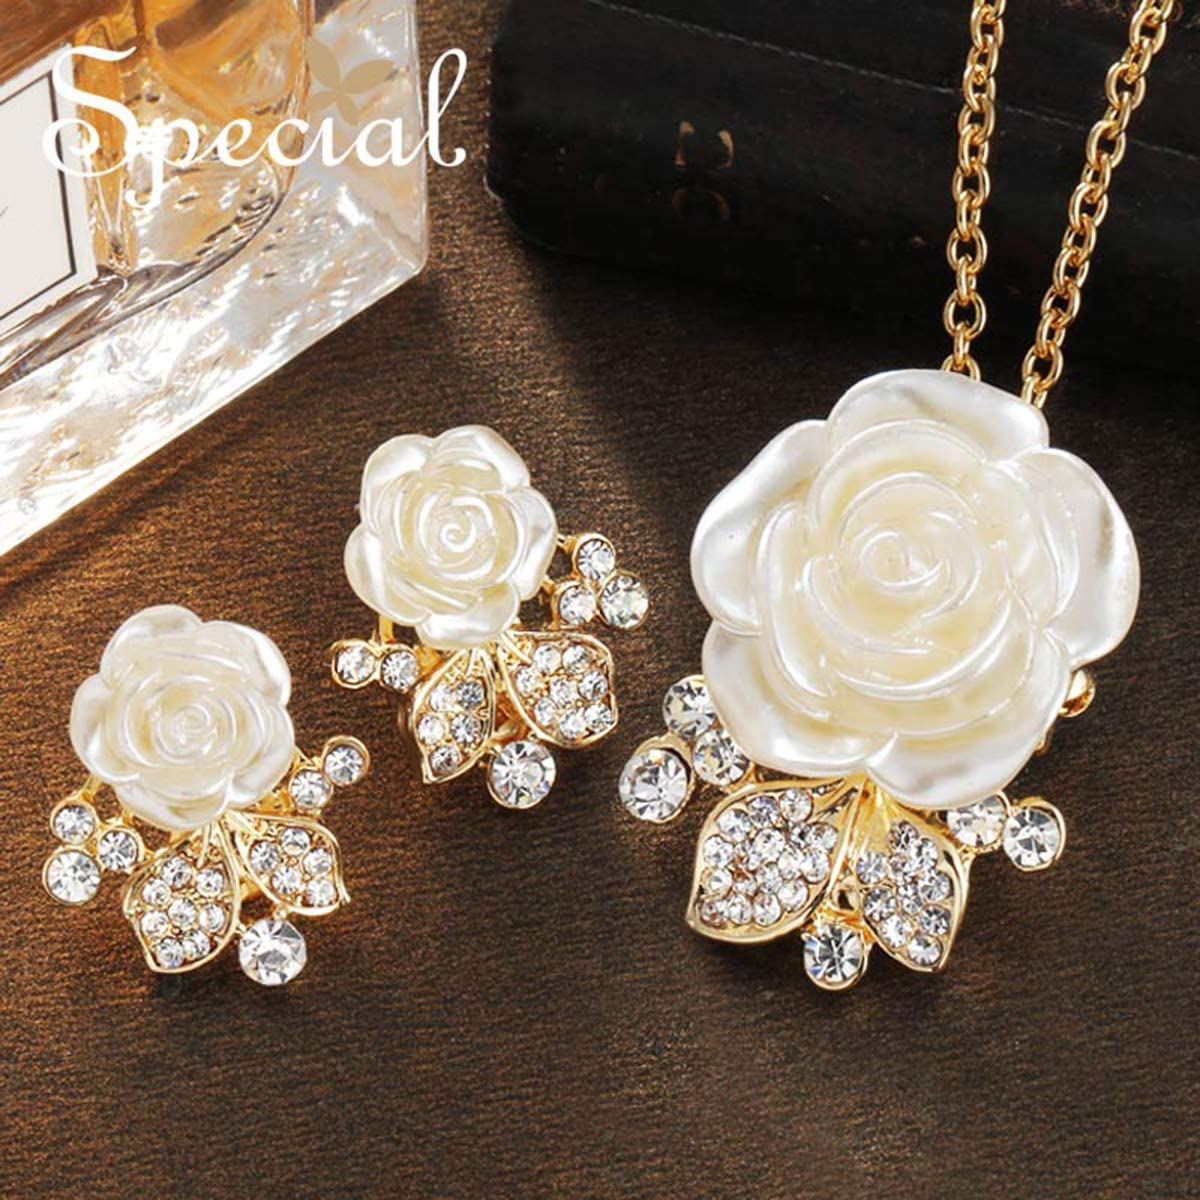 Onlyfo Diamond Accent White Rose Pendant Necklace Jewelry Box,Rose Necklace Women